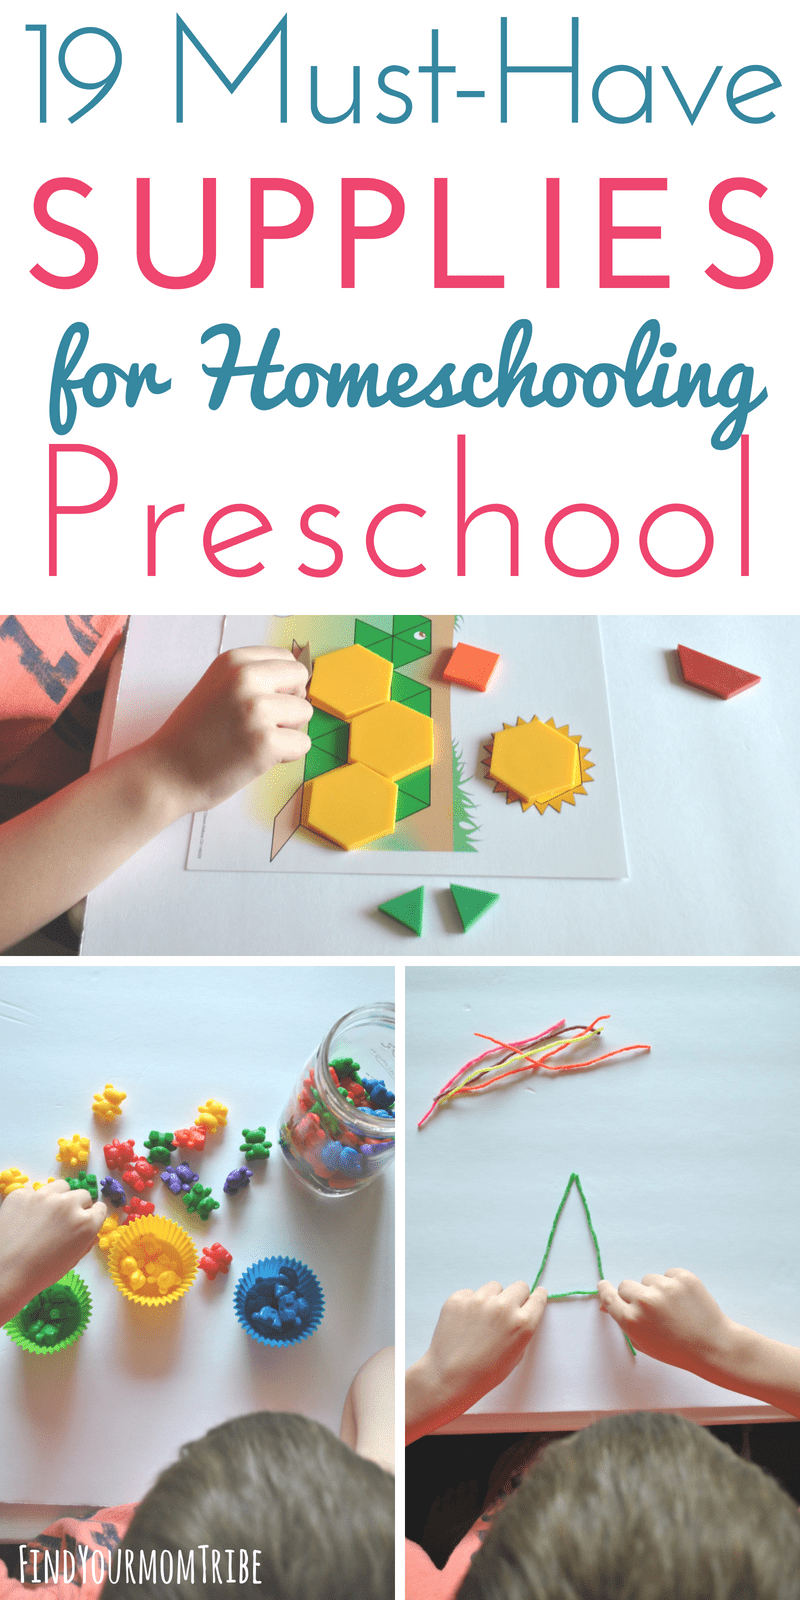 Looking for how to start homeschool preschool this year? Here are 19+ (not-so-obvious!) things you'll need for preschooling at home. These preschool supplies will provide you with simple, quick and easy activities that are FUN and educational at the same time. Click to see the whole list! Pre K tips | homeschool preschool ideas | teaching numbers and colors